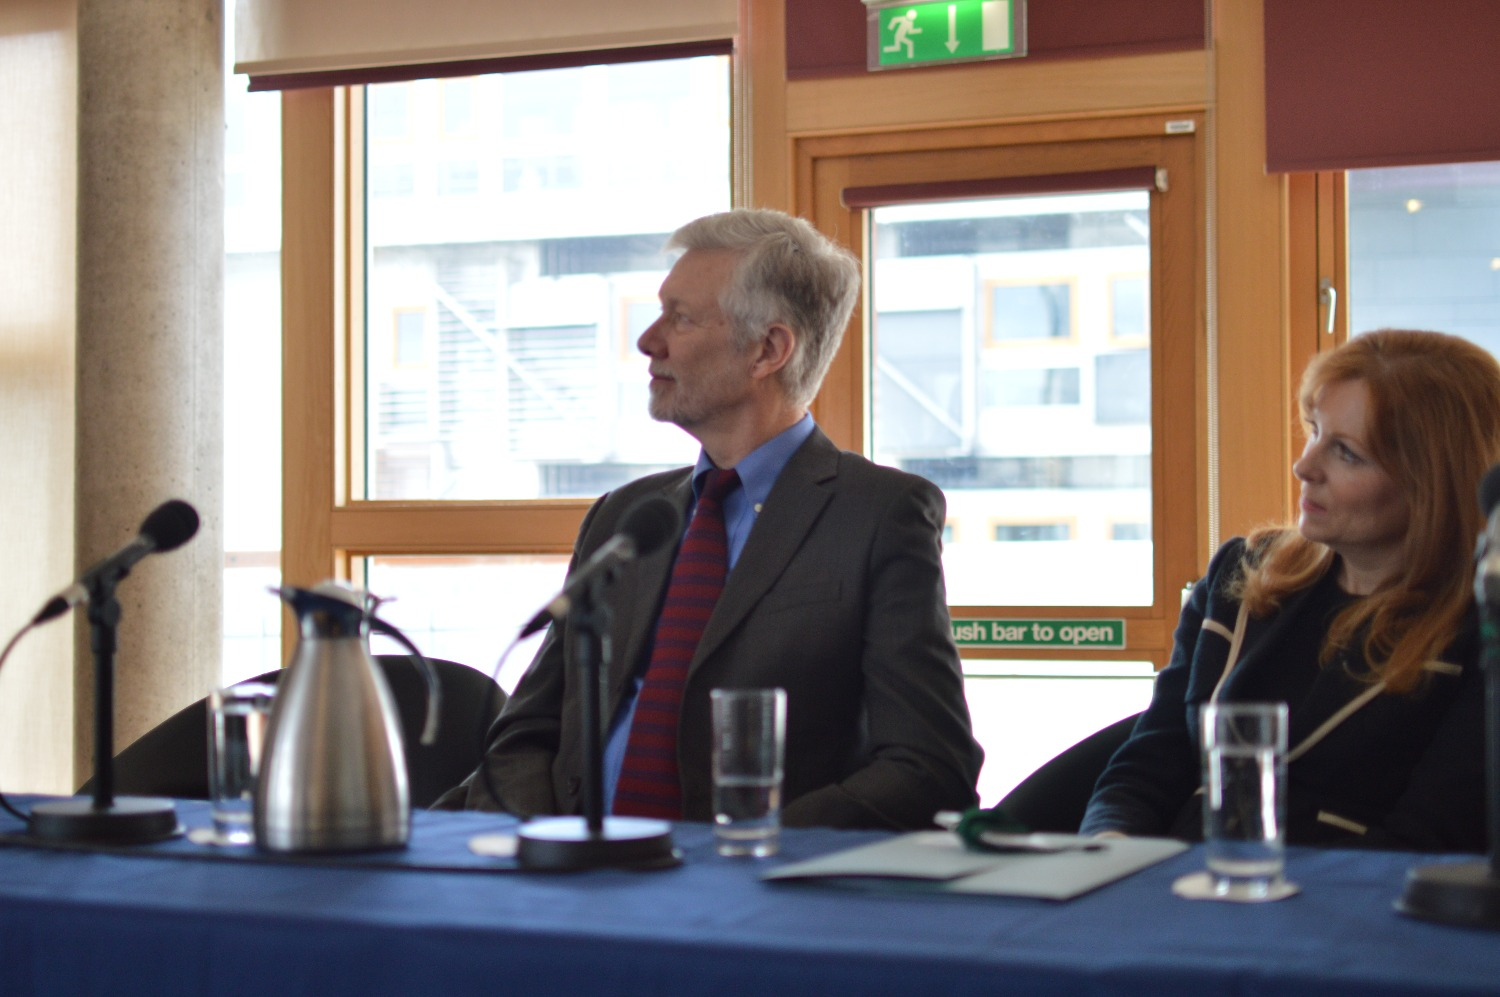 Keynote speakers Kevin Bales and Ash Denham MSP listen to a presentation.